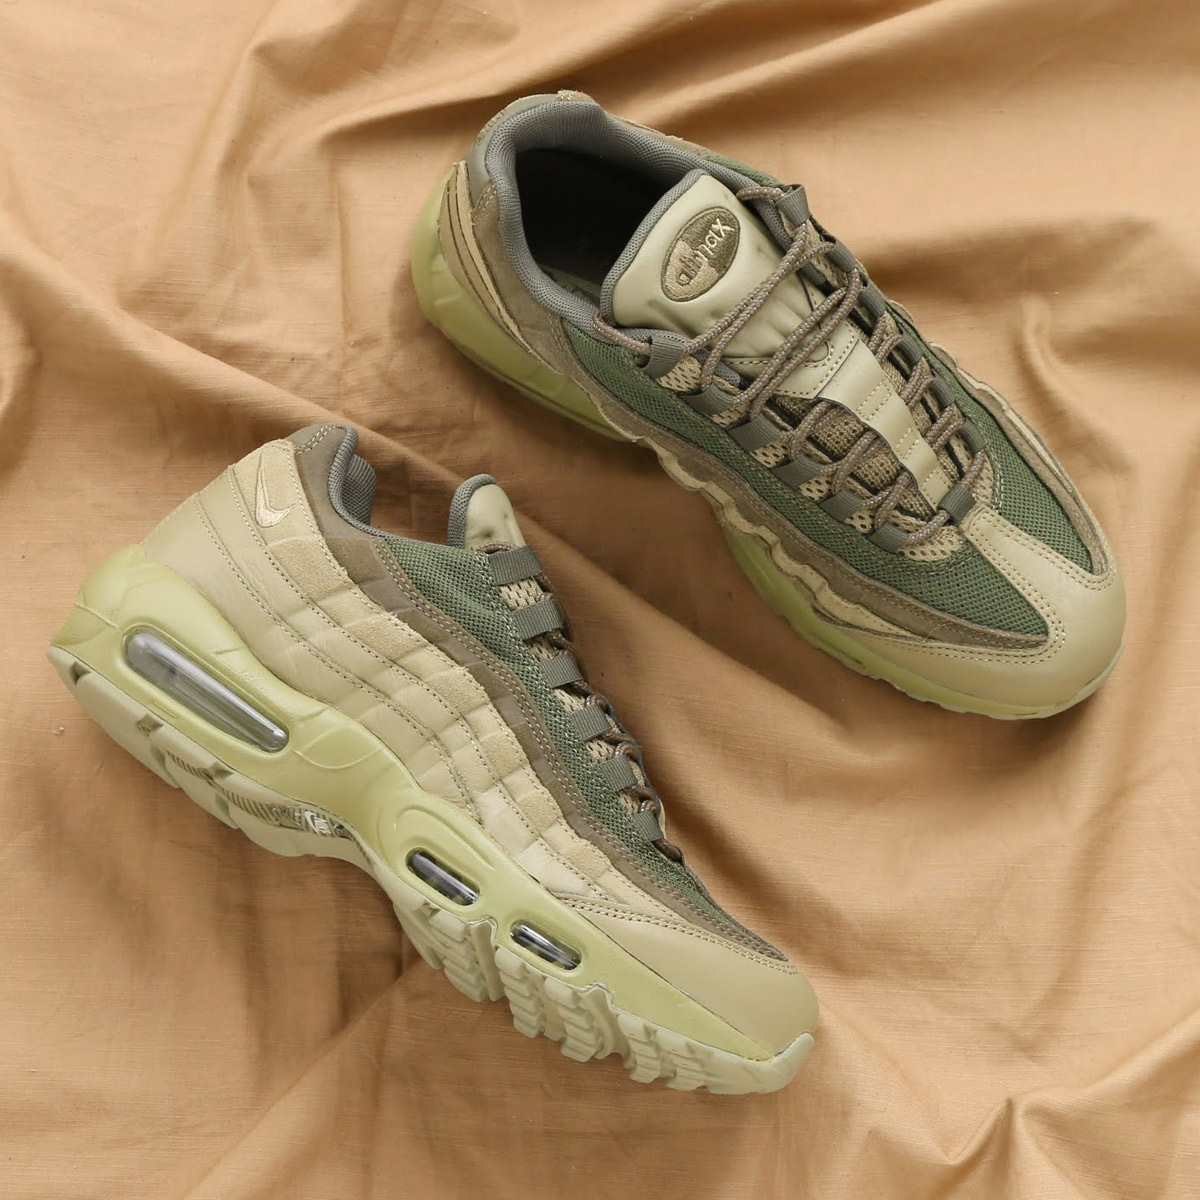 NIKE AIR MAX 95 PRM(ナイキ エア マックス 95 プレミアム)(NEUTRAL OLIVE/NEUTRAL OLIVE-MEDIUM OLIVE)18SP-S